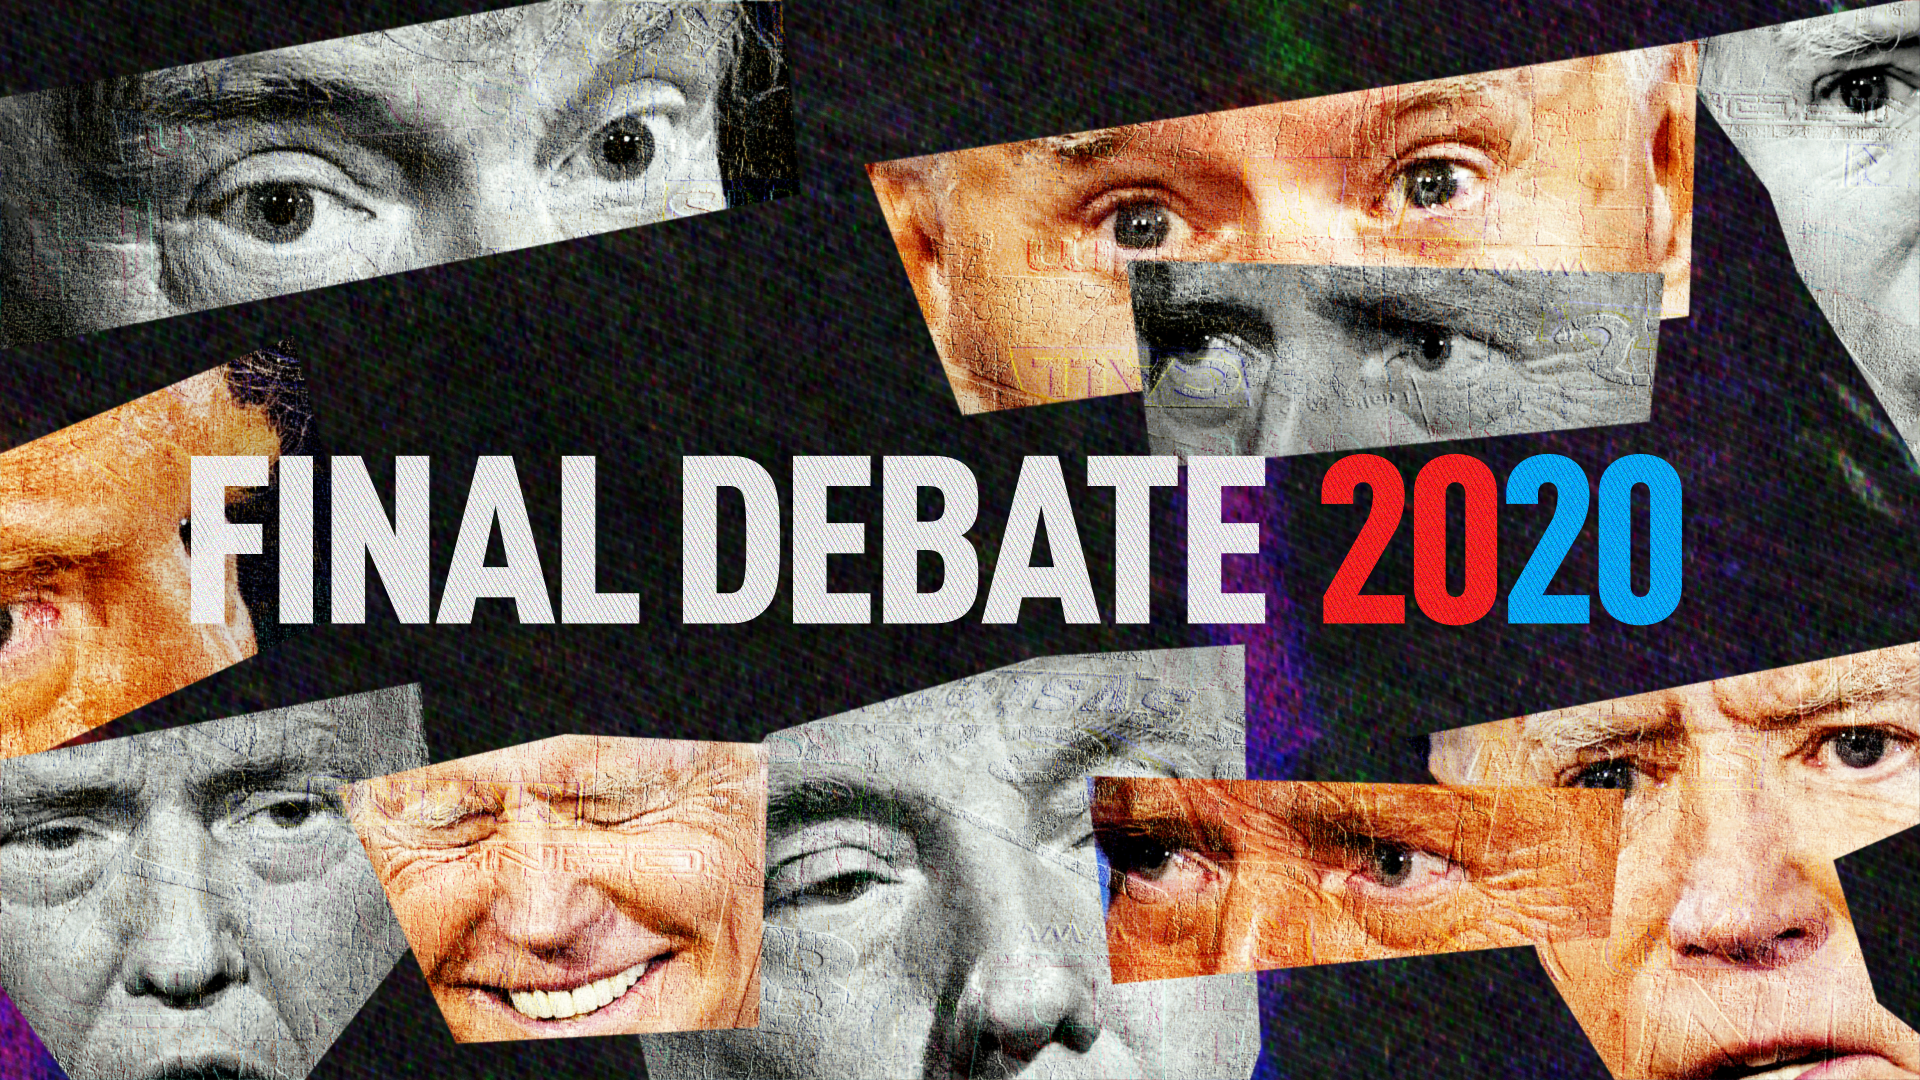 Muted, Candidate's Faces Get Loud